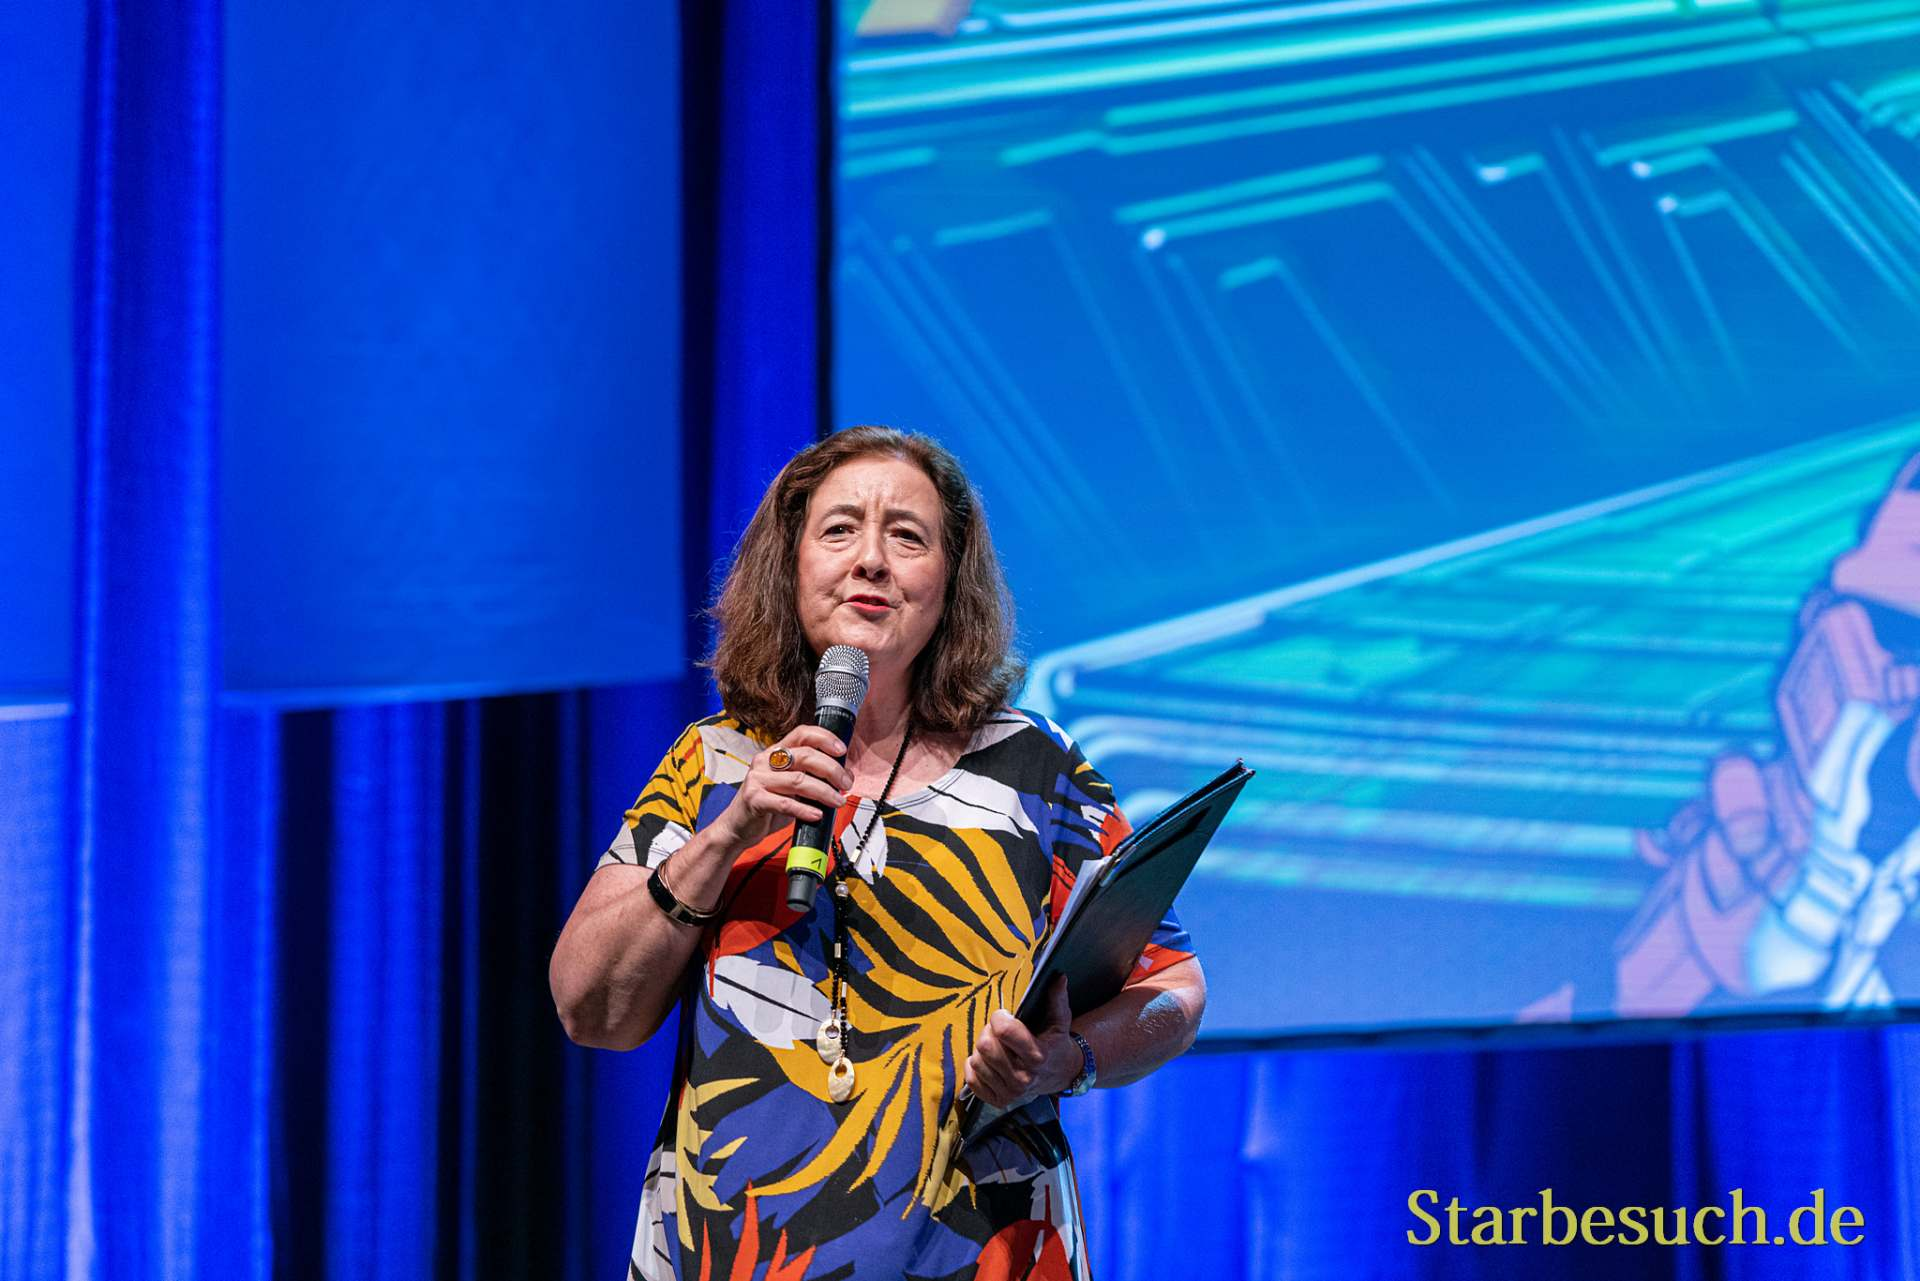 Bonn, Germany - June 8 2019: Lori Dungey (*1957, New Zealand actress - The Lord of the Rings) at FedCon 28, a four day sci-fi convention. FedCon 28 took place Jun 7-10 2019.